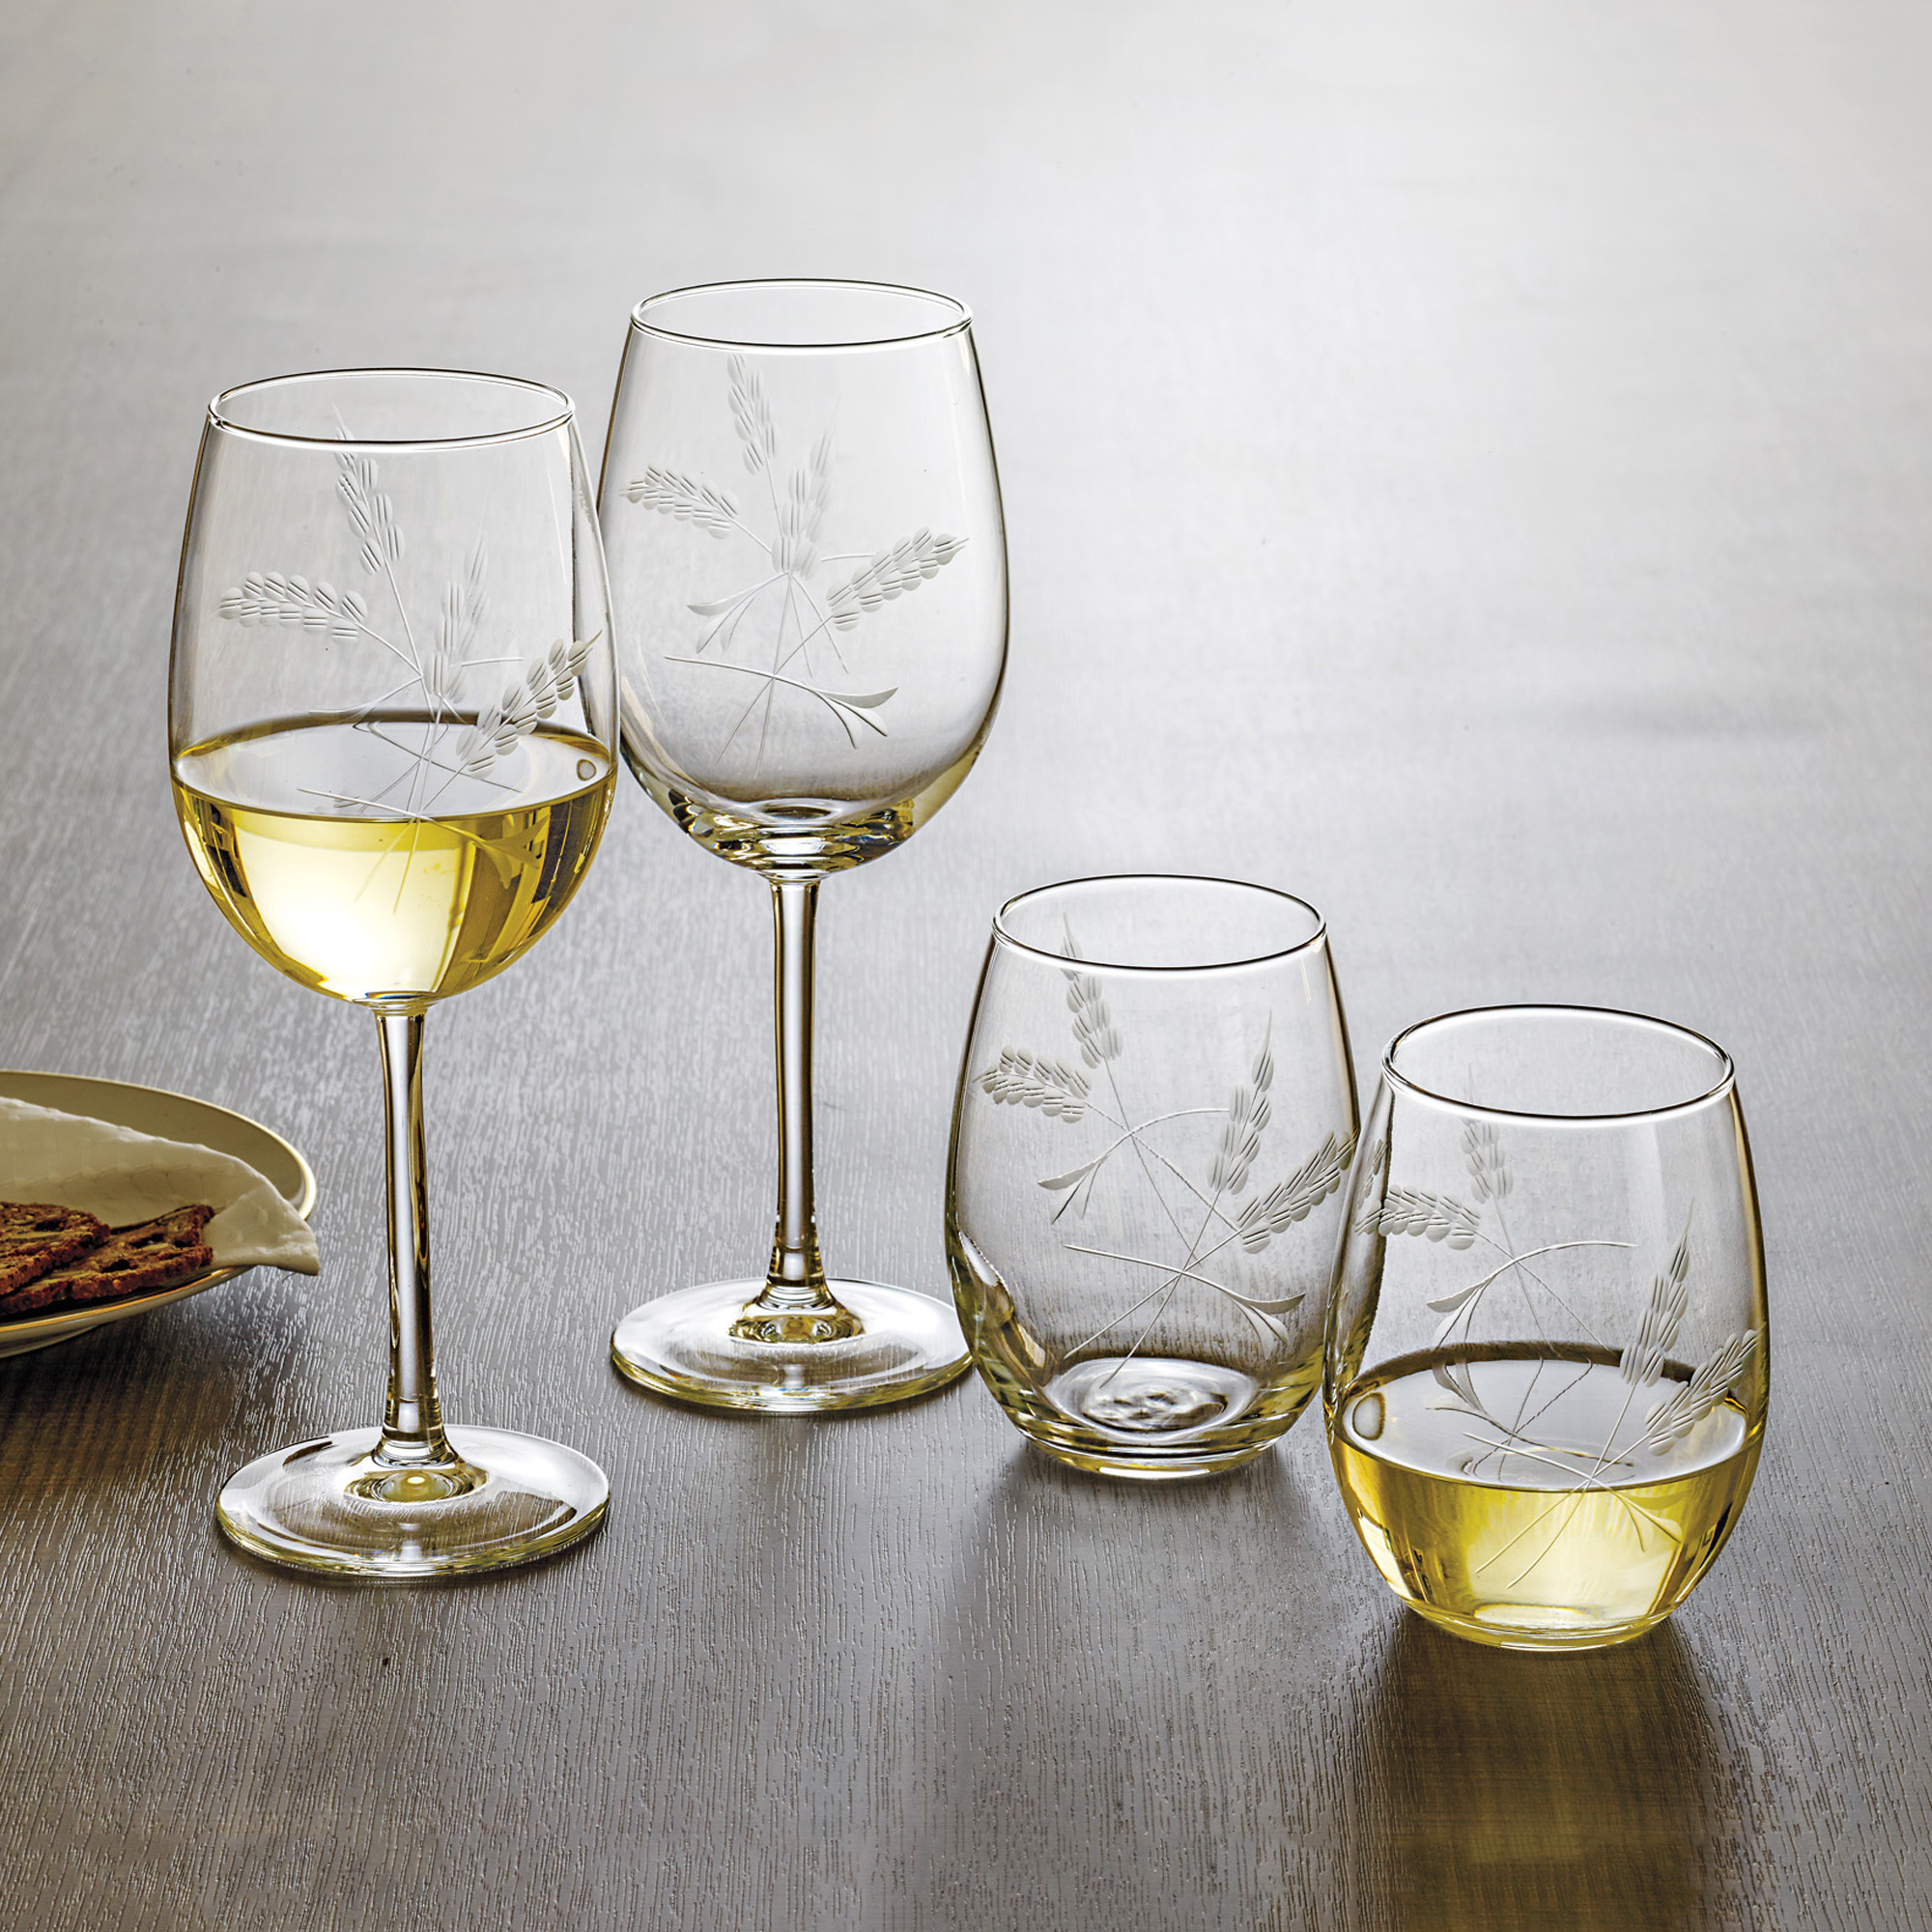 Wheat Glassware